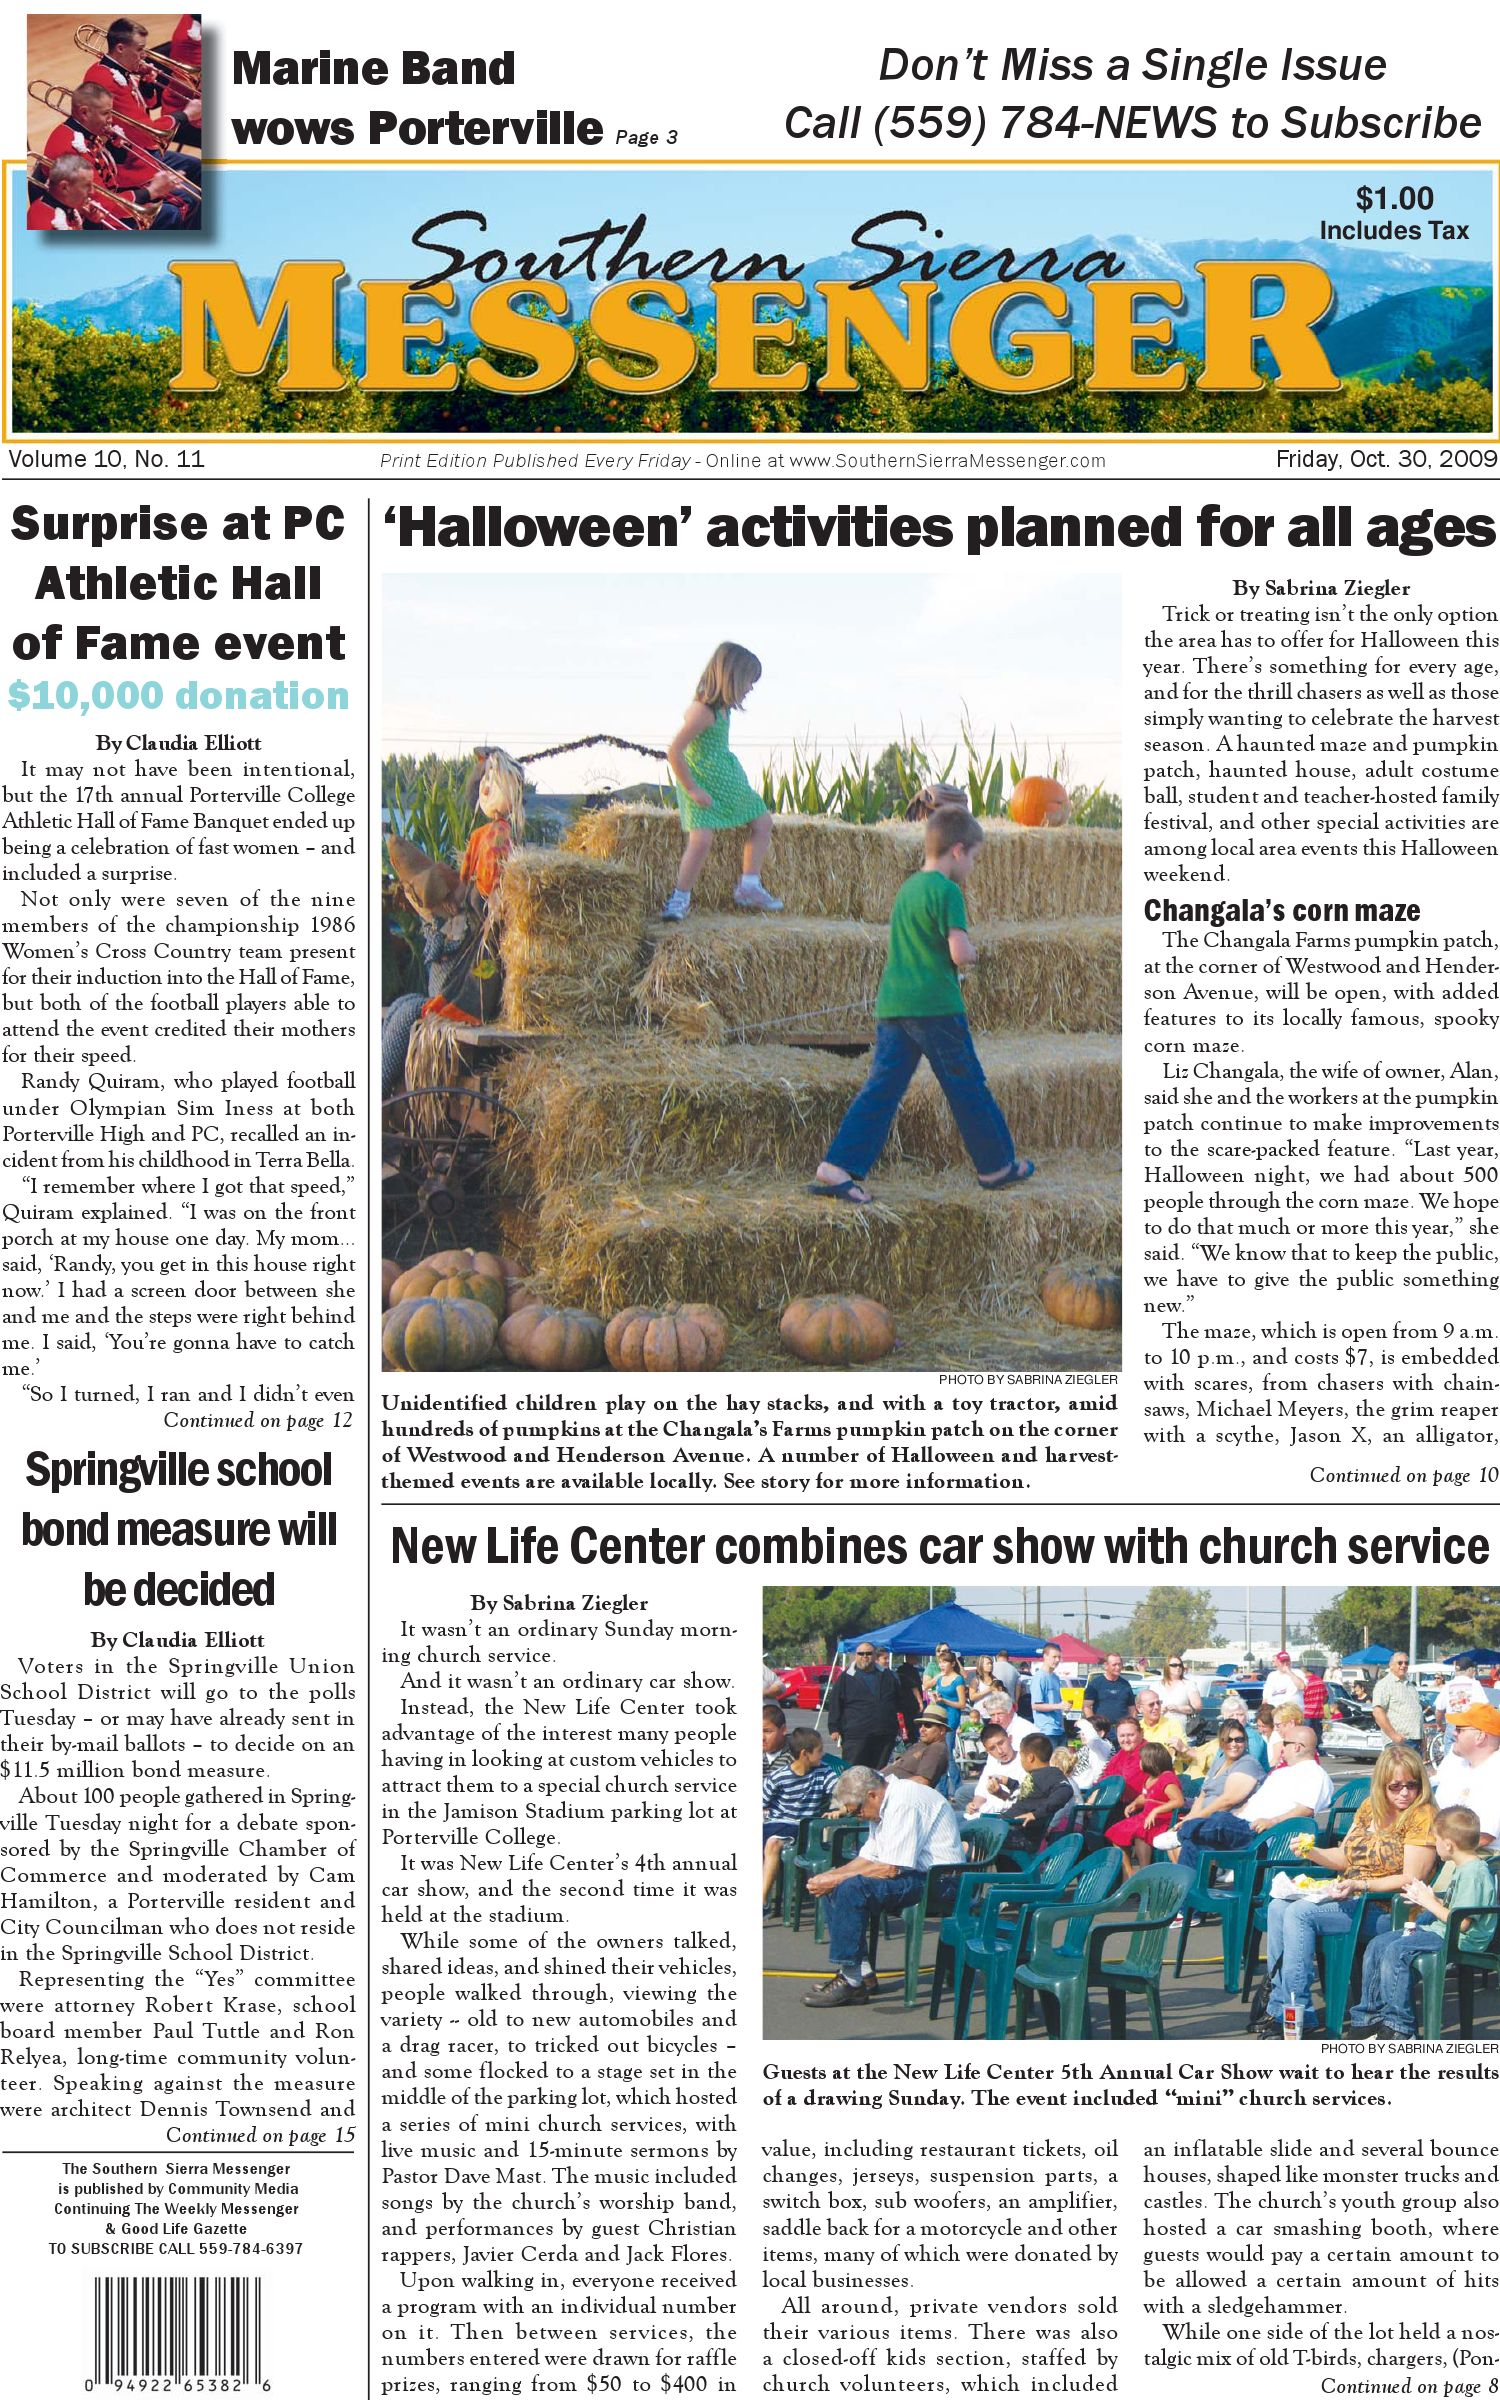 Southern Sierra Messenger, issue of 10/30/09 by Community Media - issuu